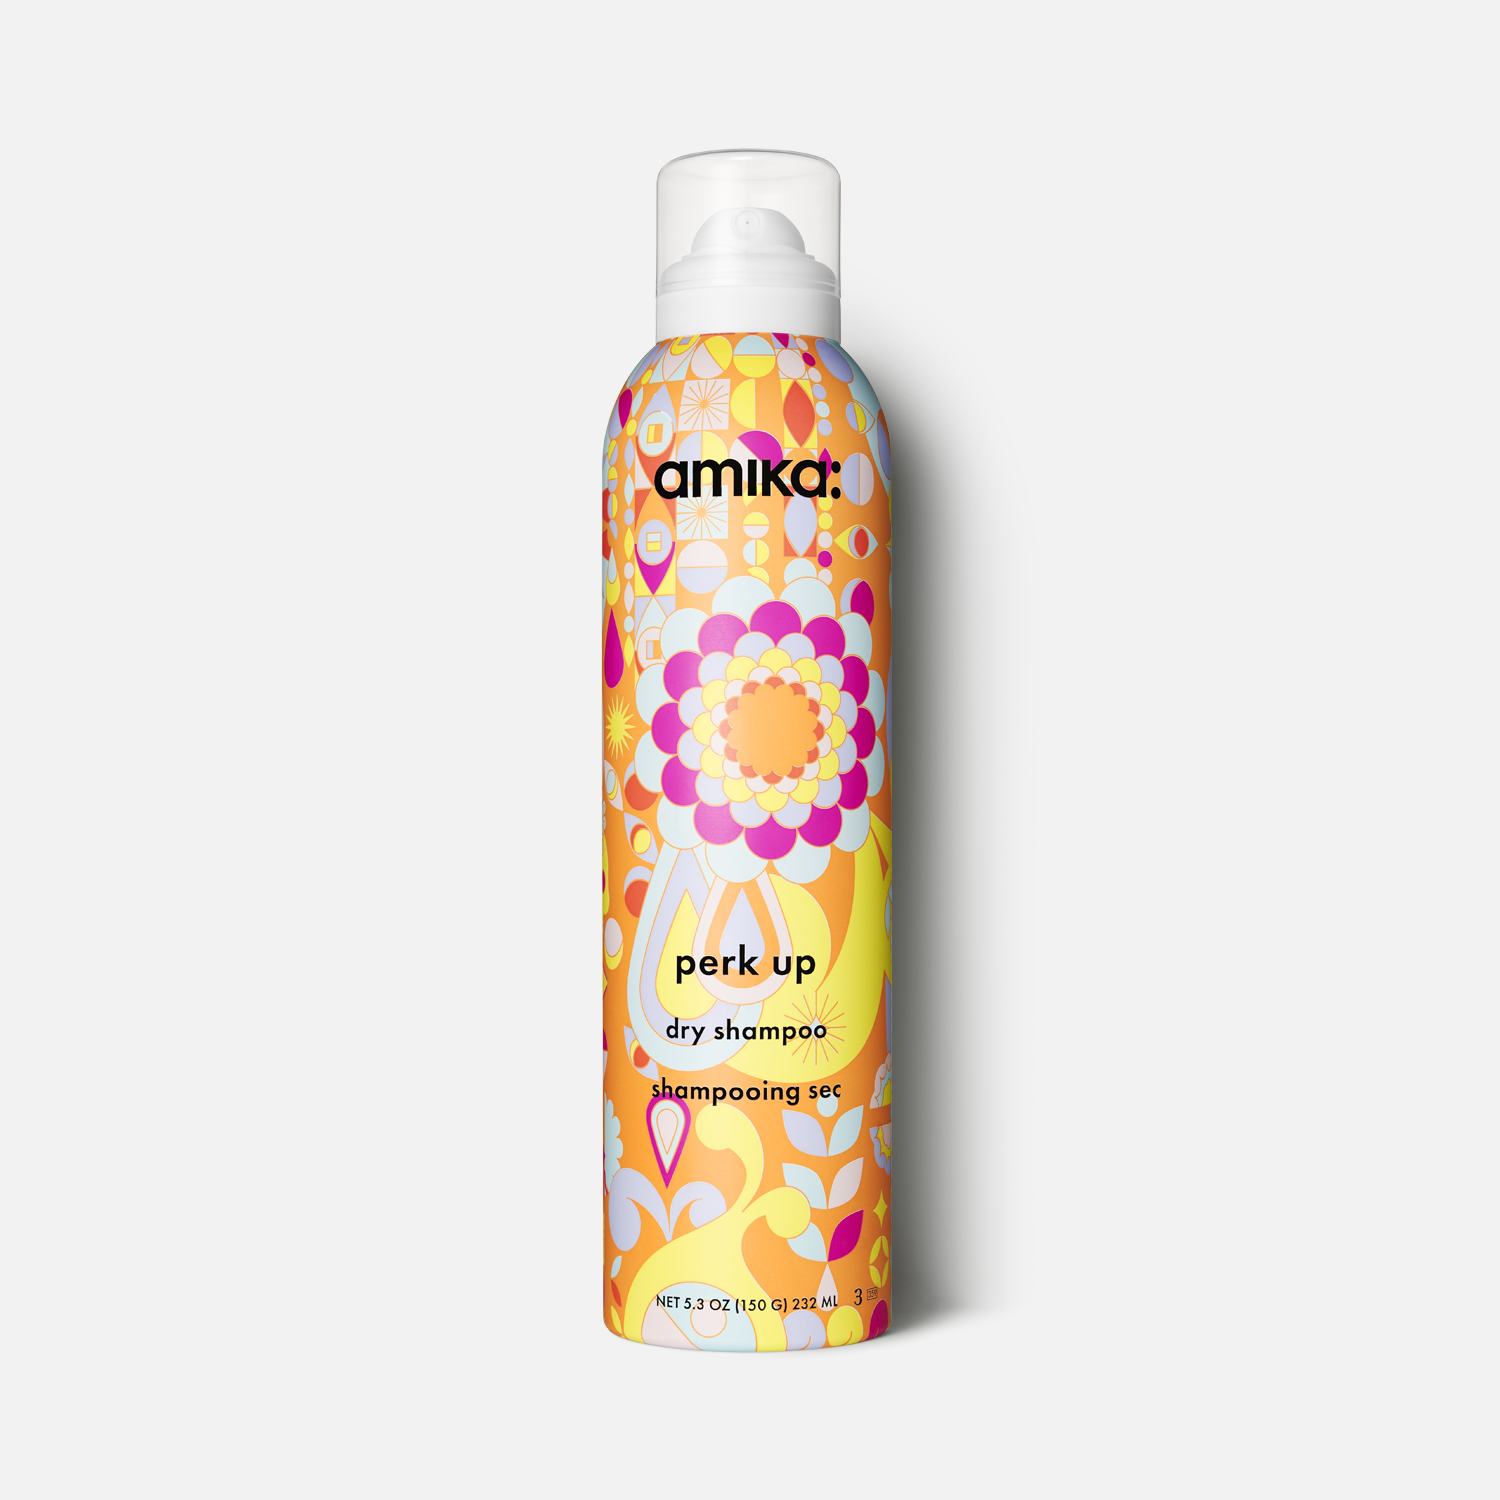 Perk Up Dry Shampoo 323 ml / 5.3 oz | amika